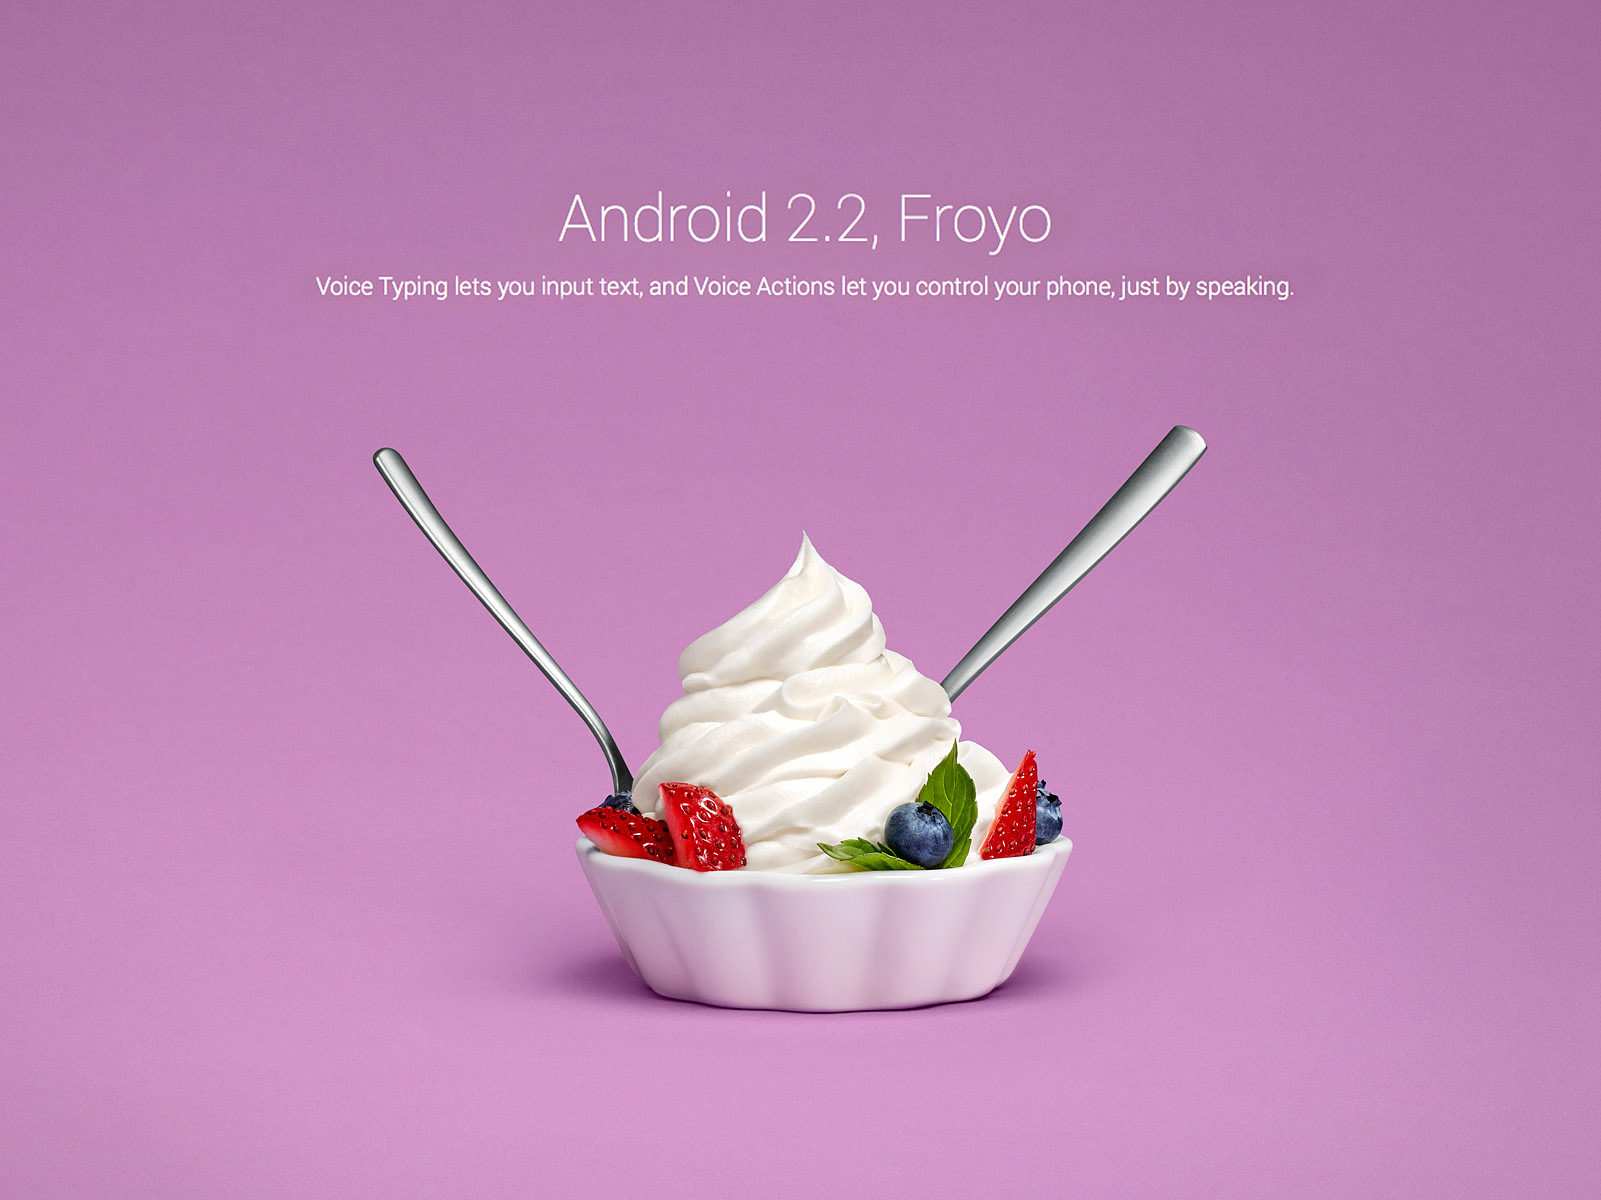 Caruso_Android_Froyo_300dpi